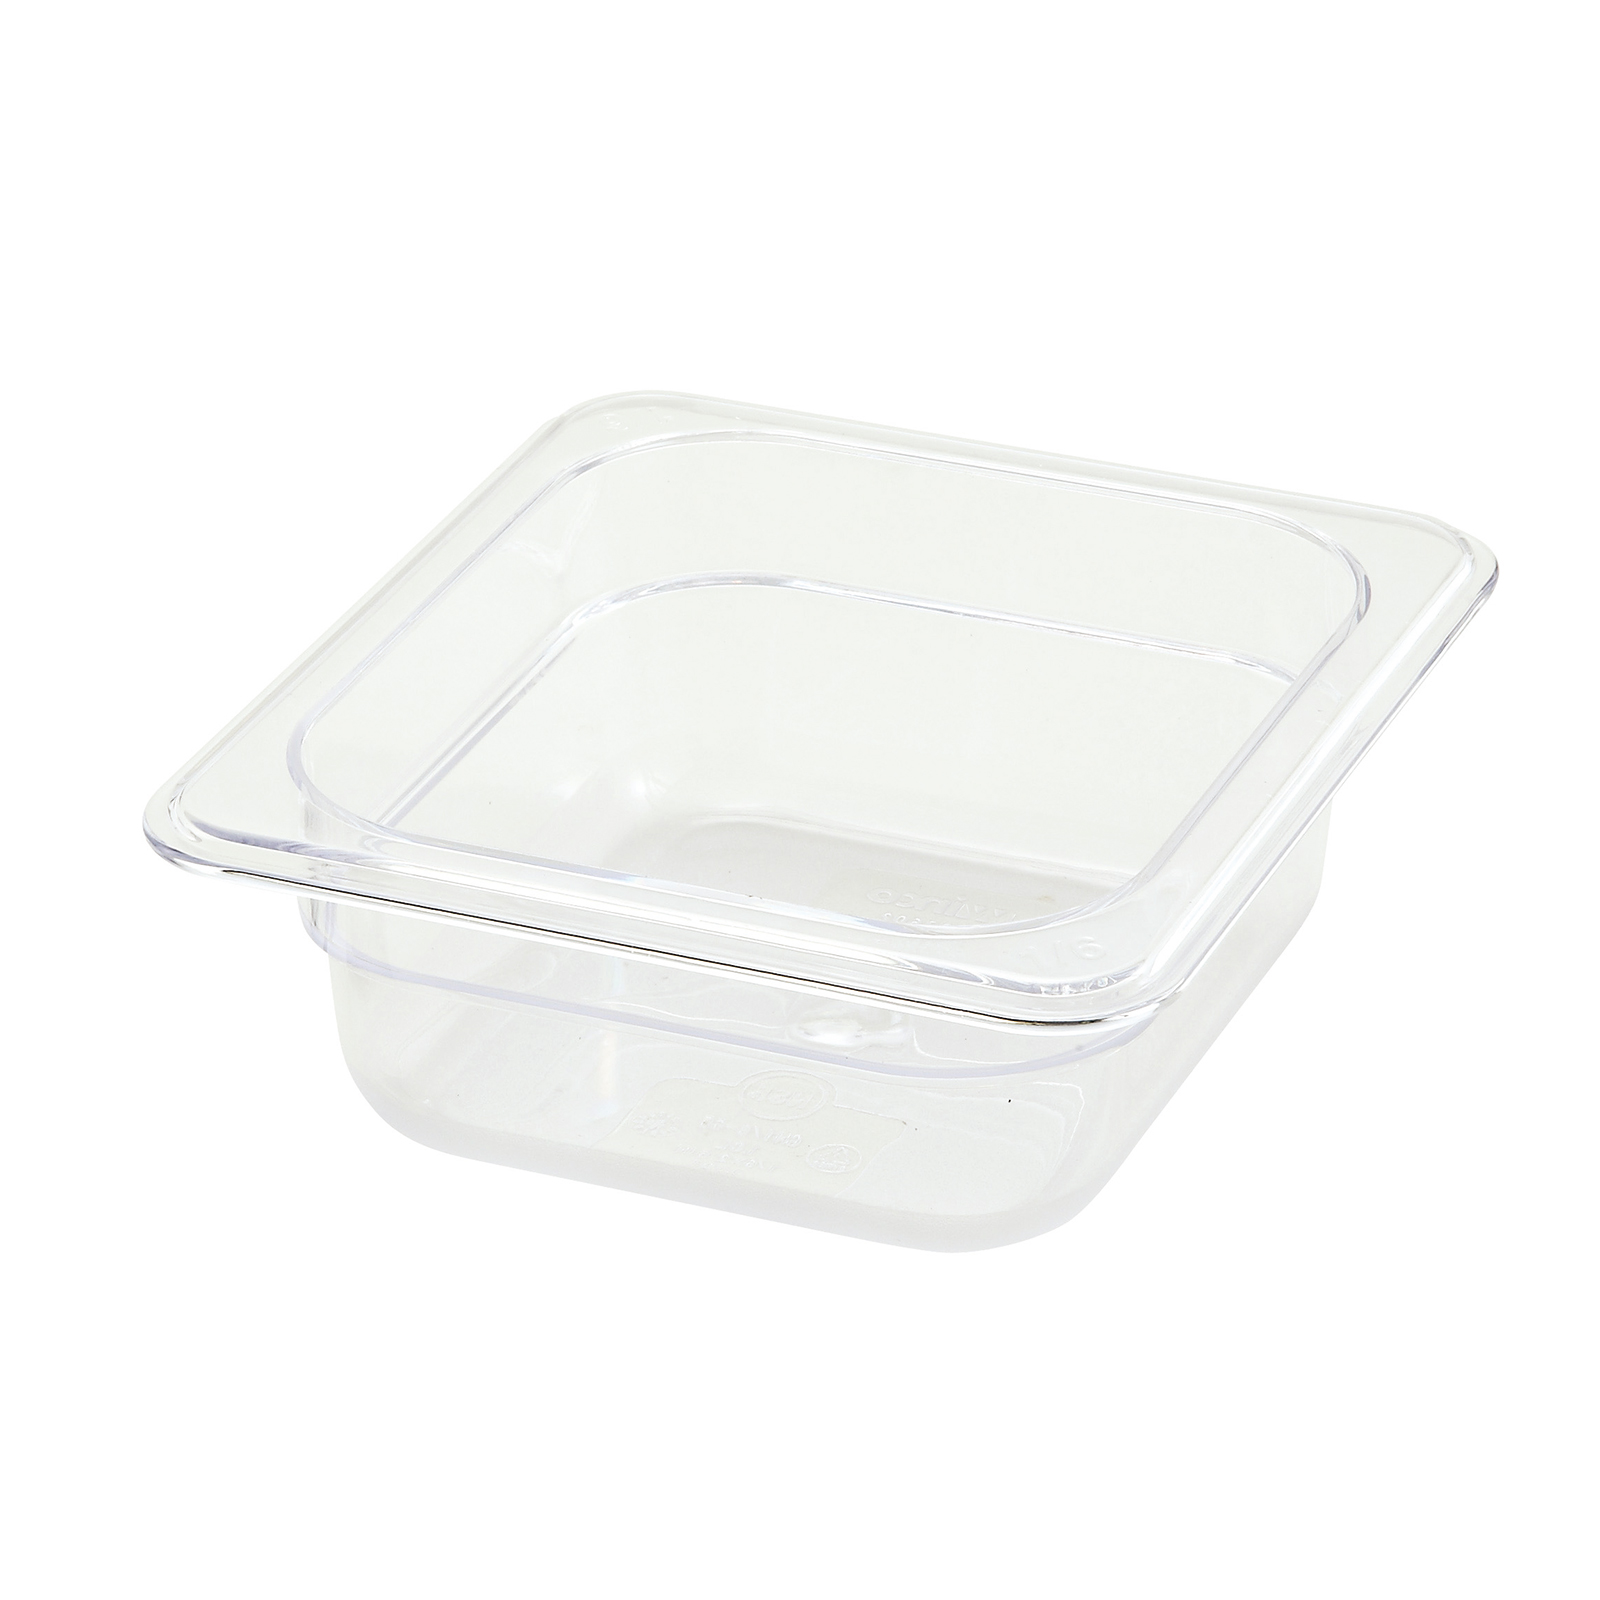 Winco SP7602 food pan, plastic